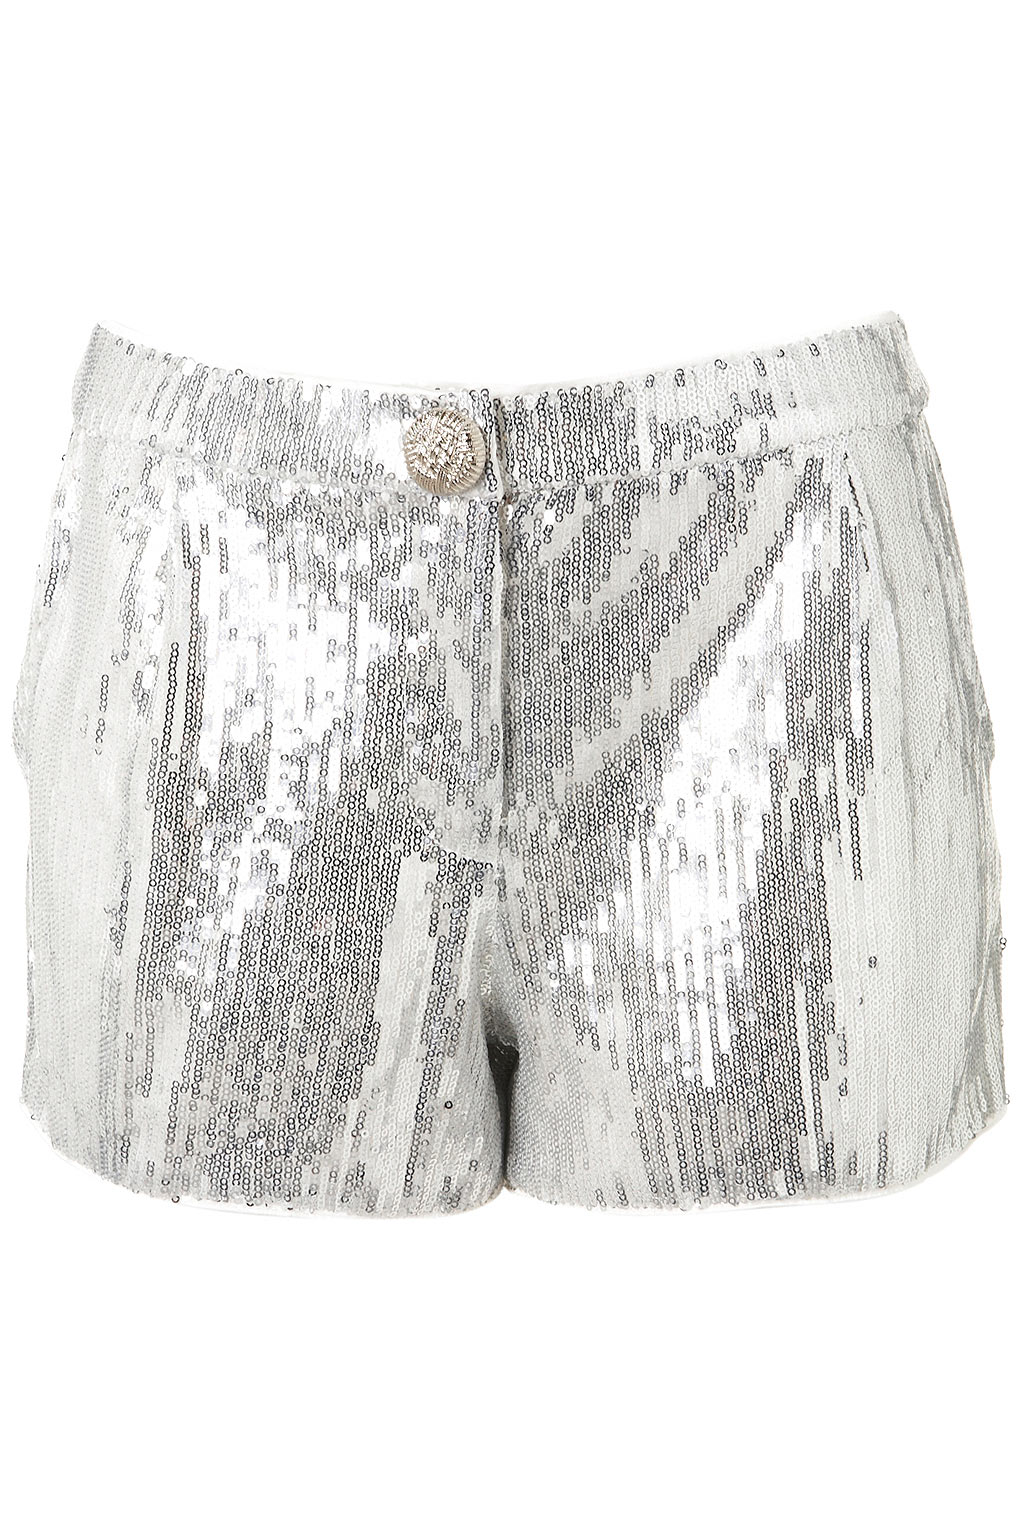 Topshop Sequin Shorts in Silver | Lyst